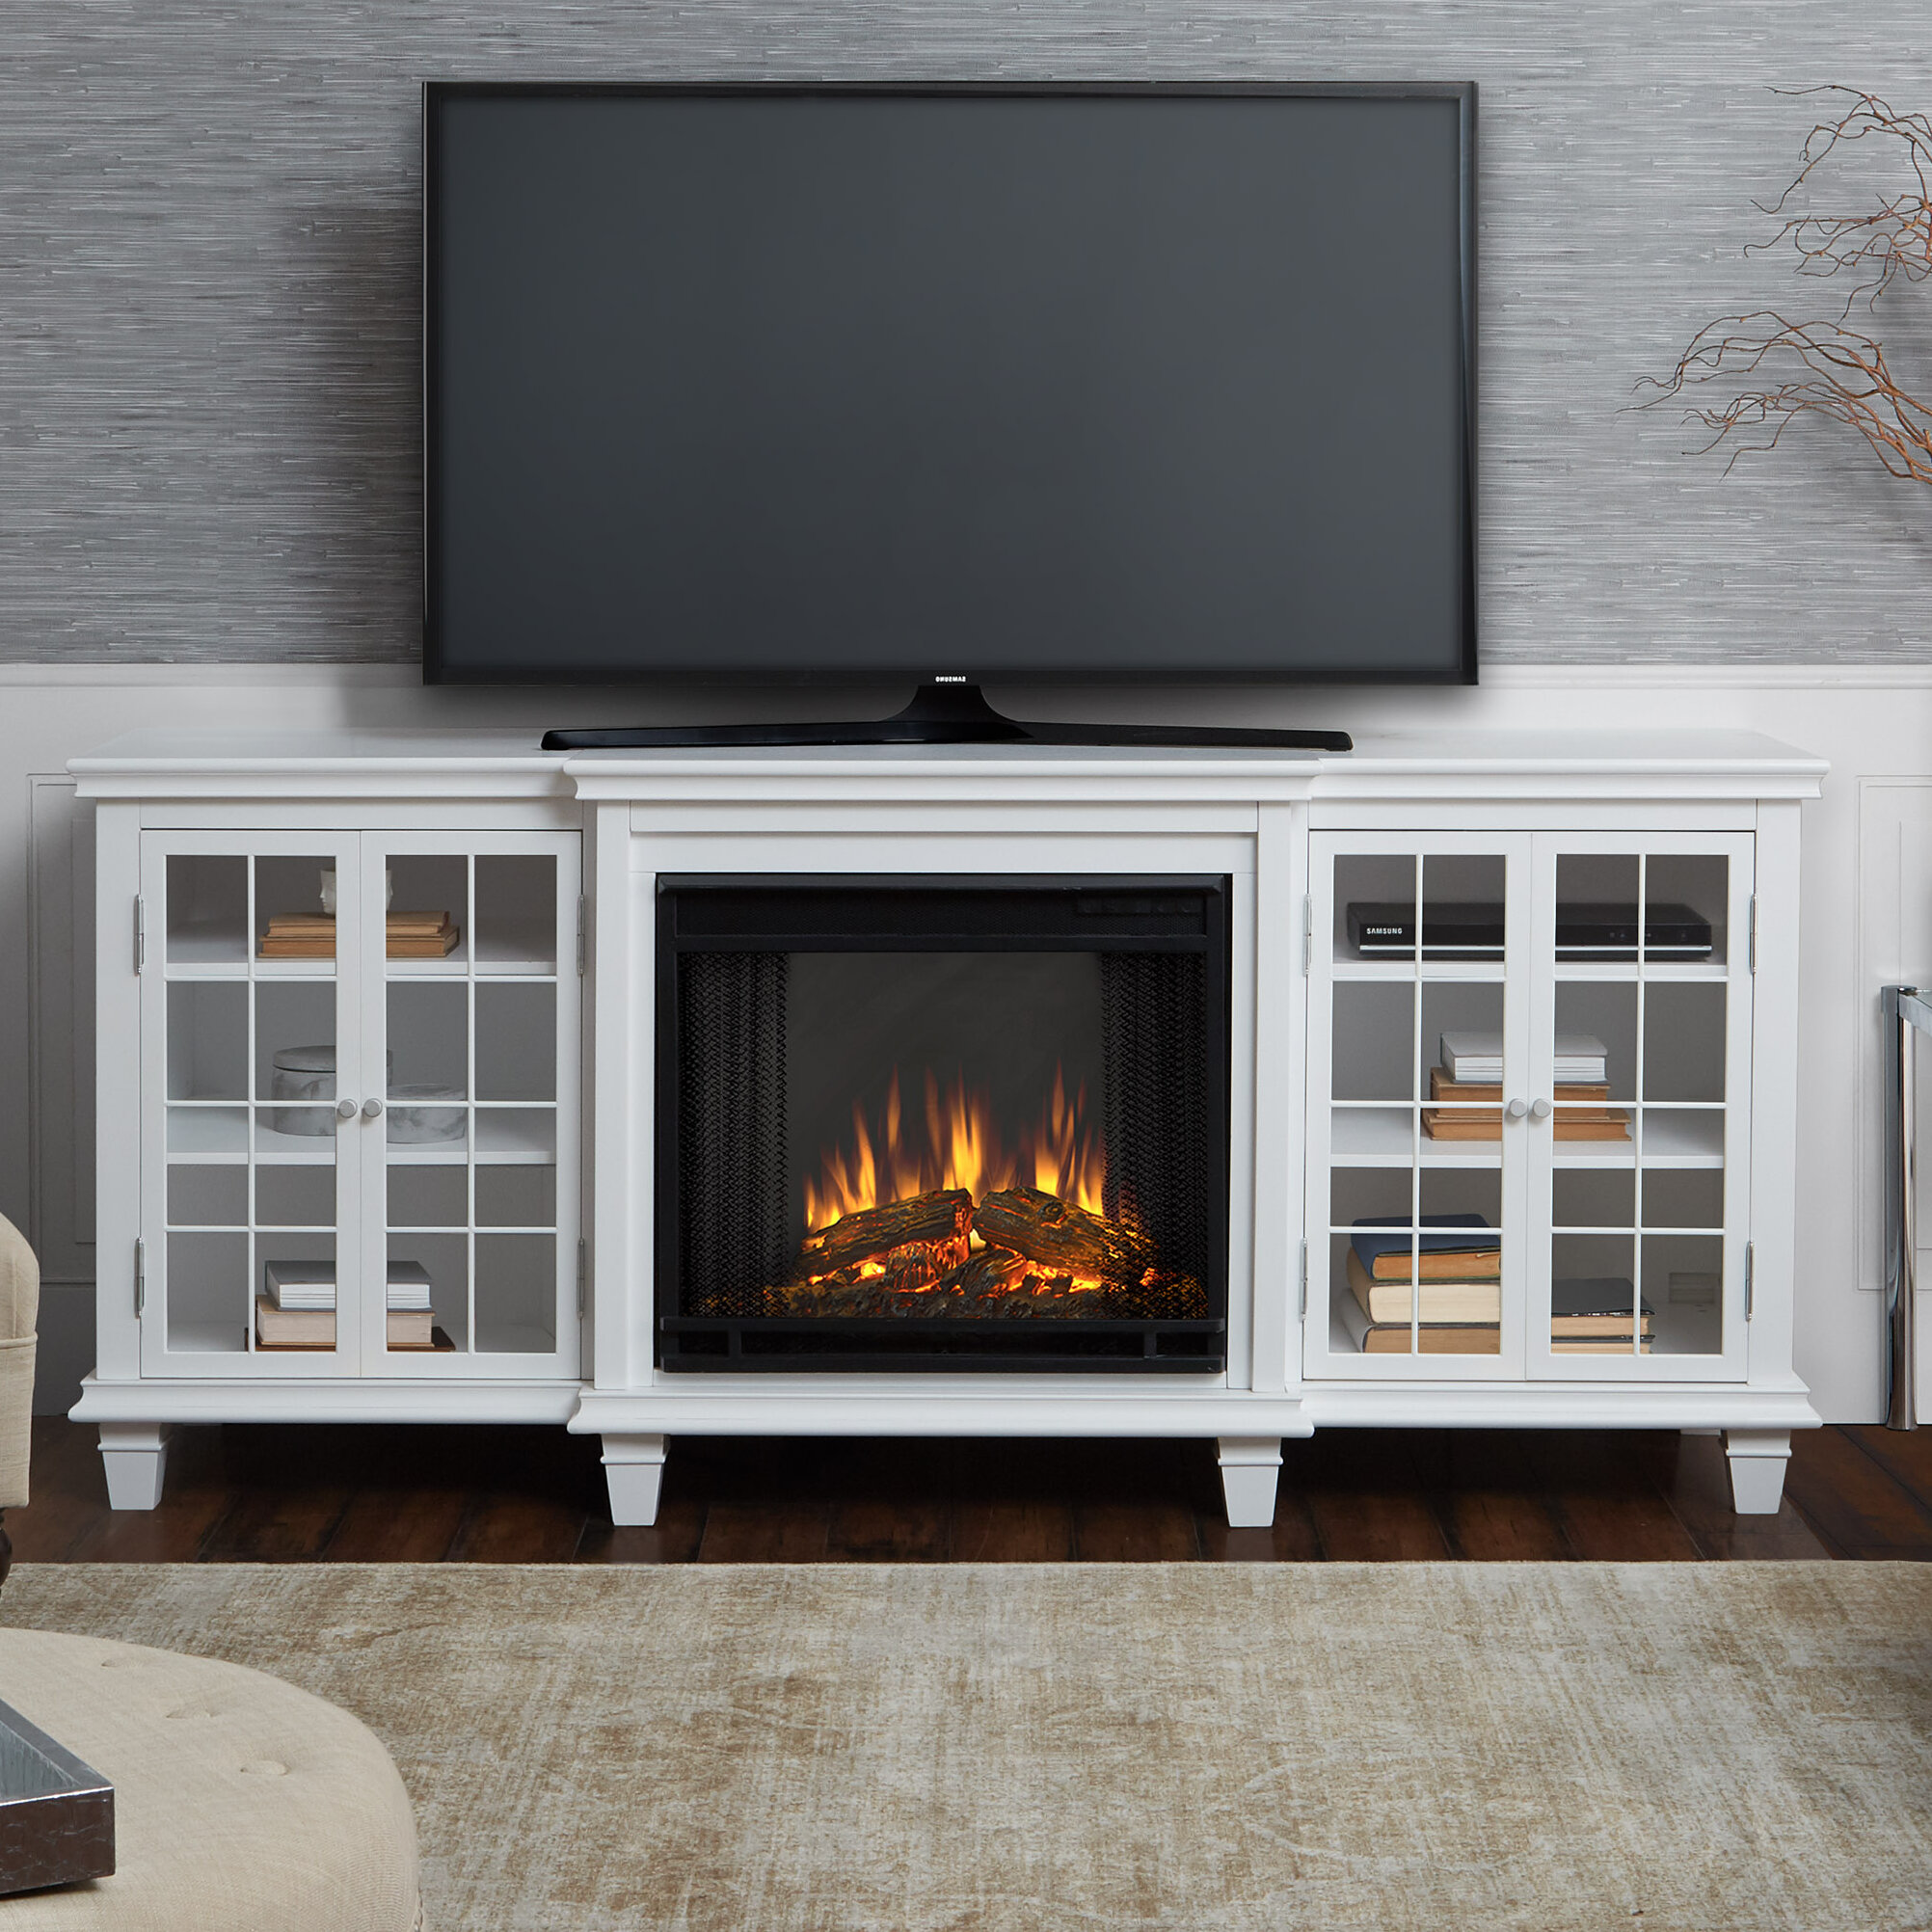 Outstanding Marlowe Tv Stand With Electric Fireplace Download Free Architecture Designs Ponolprimenicaraguapropertycom